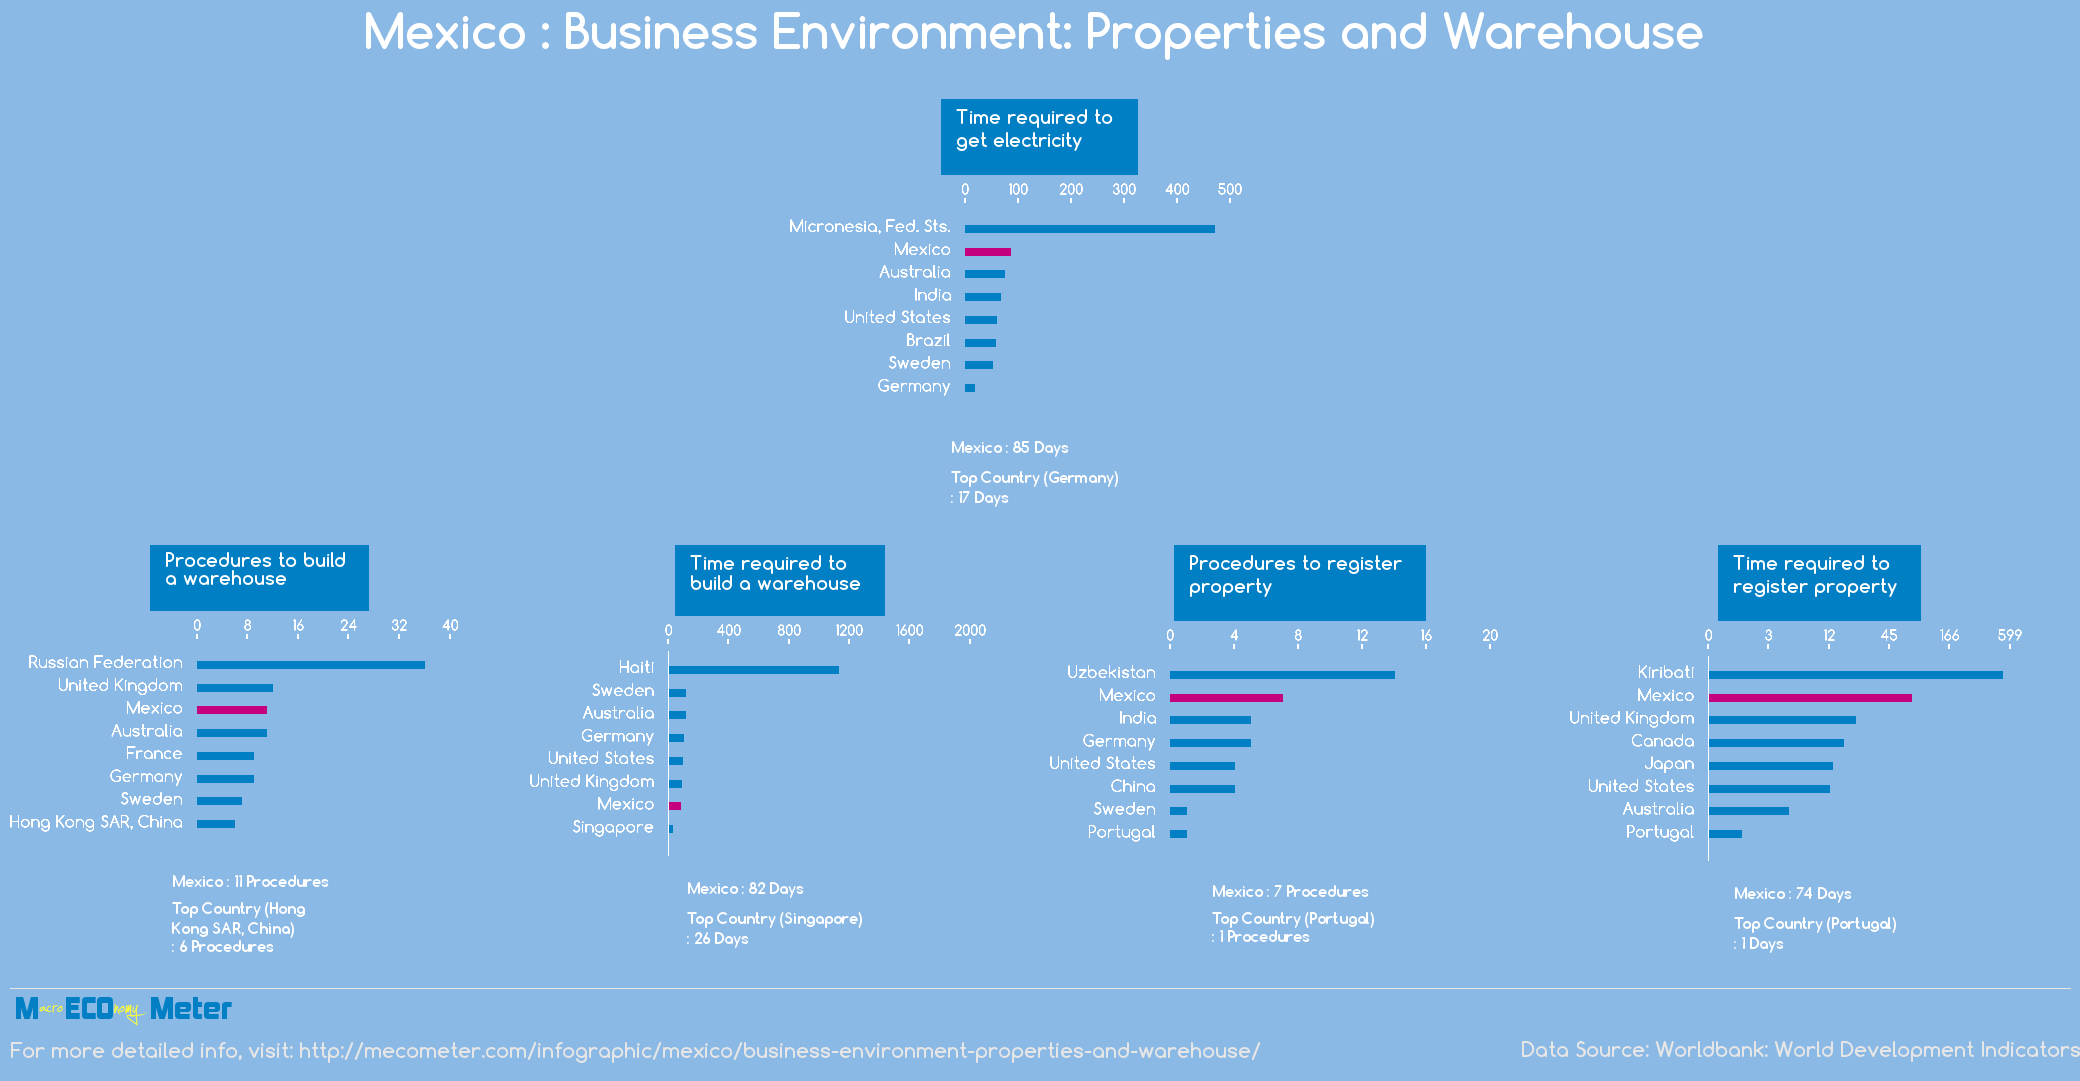 Mexico : Business Environment: Properties and Warehouse